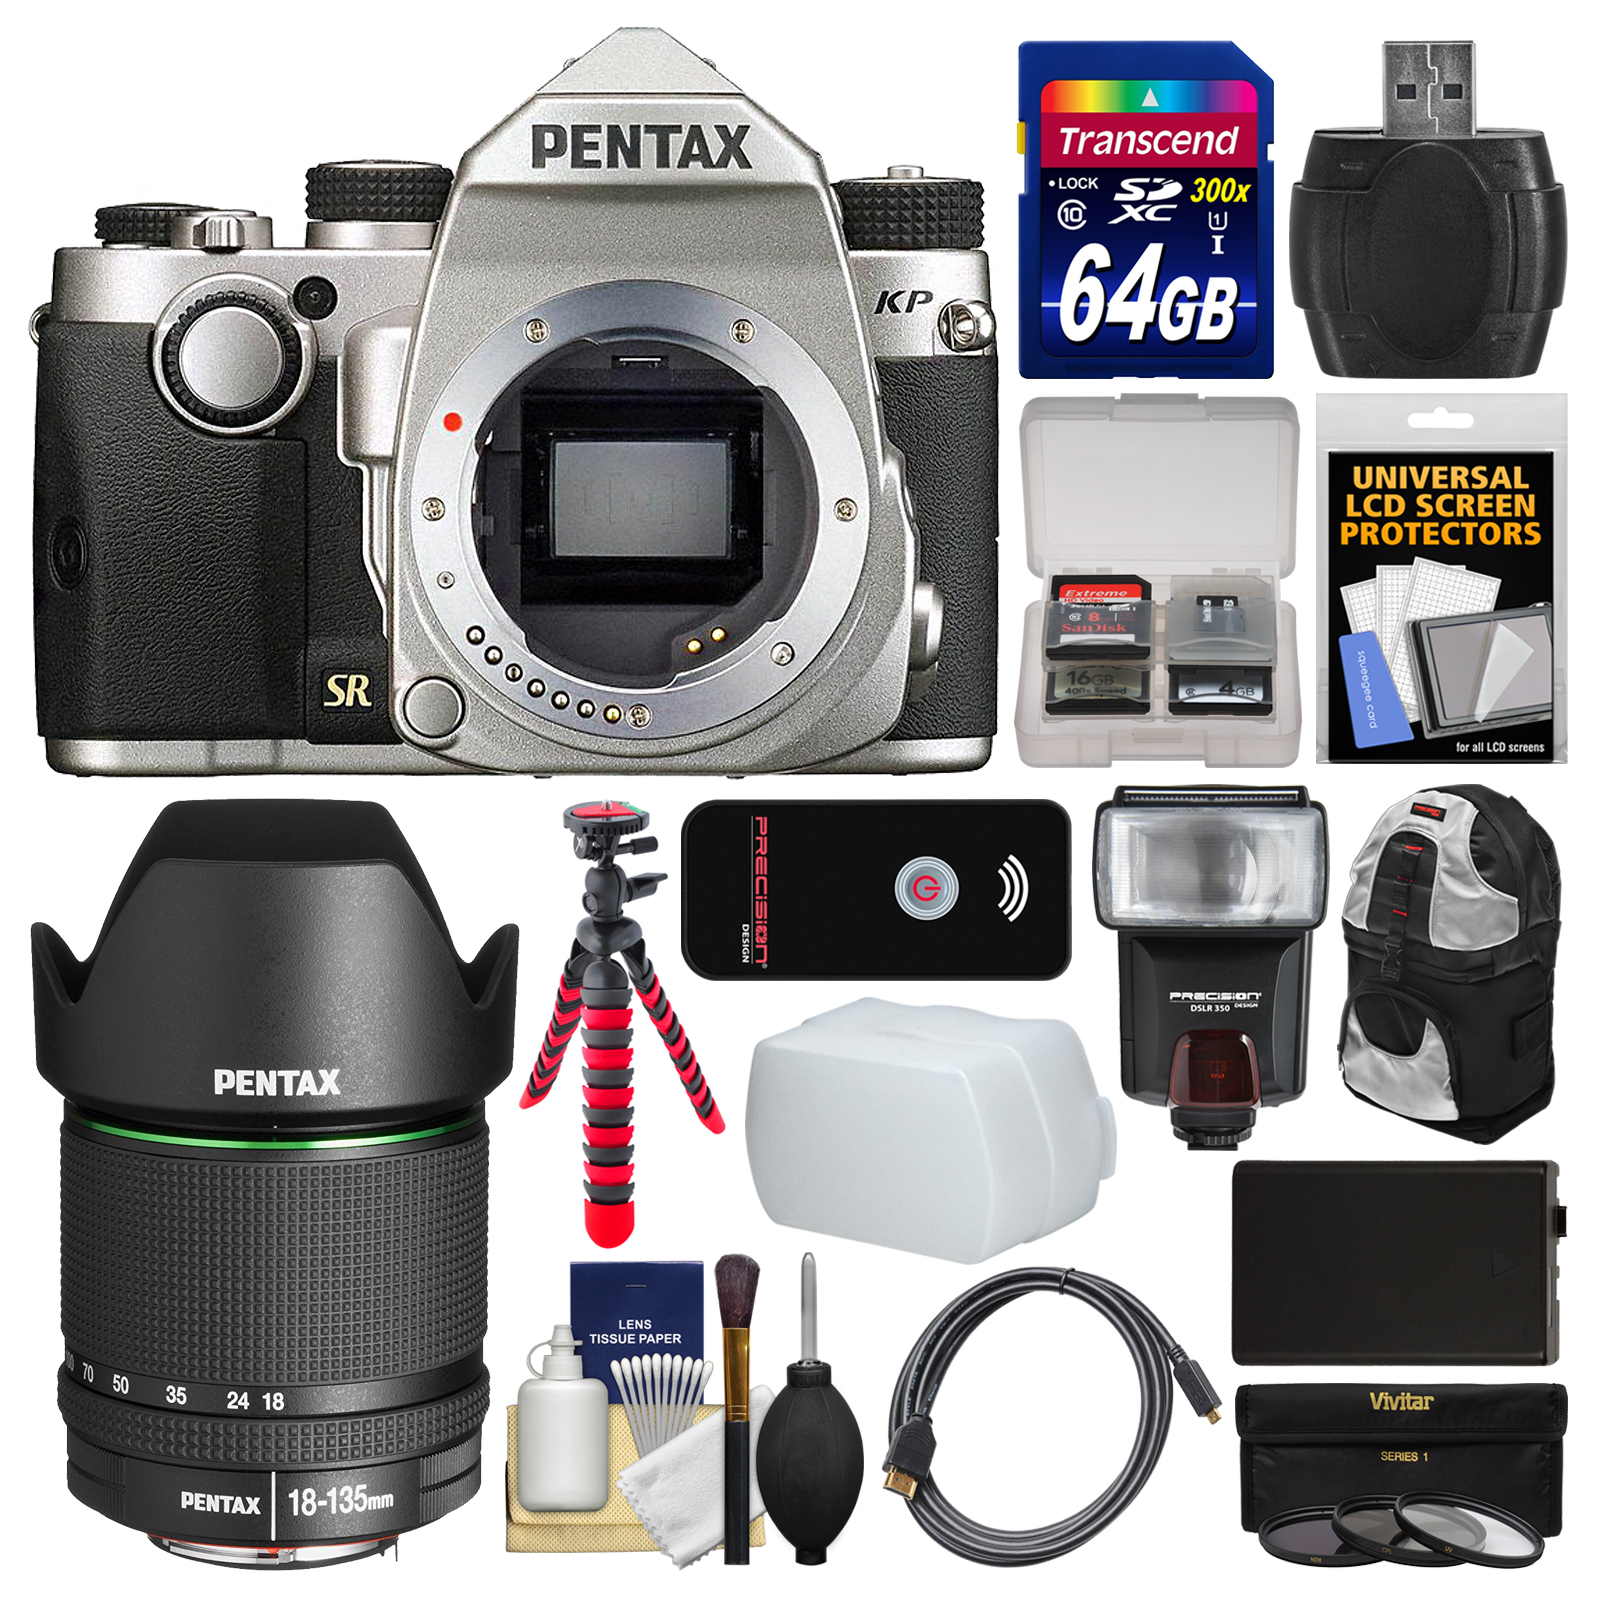 Pentax KP Wi-Fi Digital SLR Camera Body (Silver) with 18-135mm Lens + 64GB Card + Backpack + Flash + Battery +... by Pentax